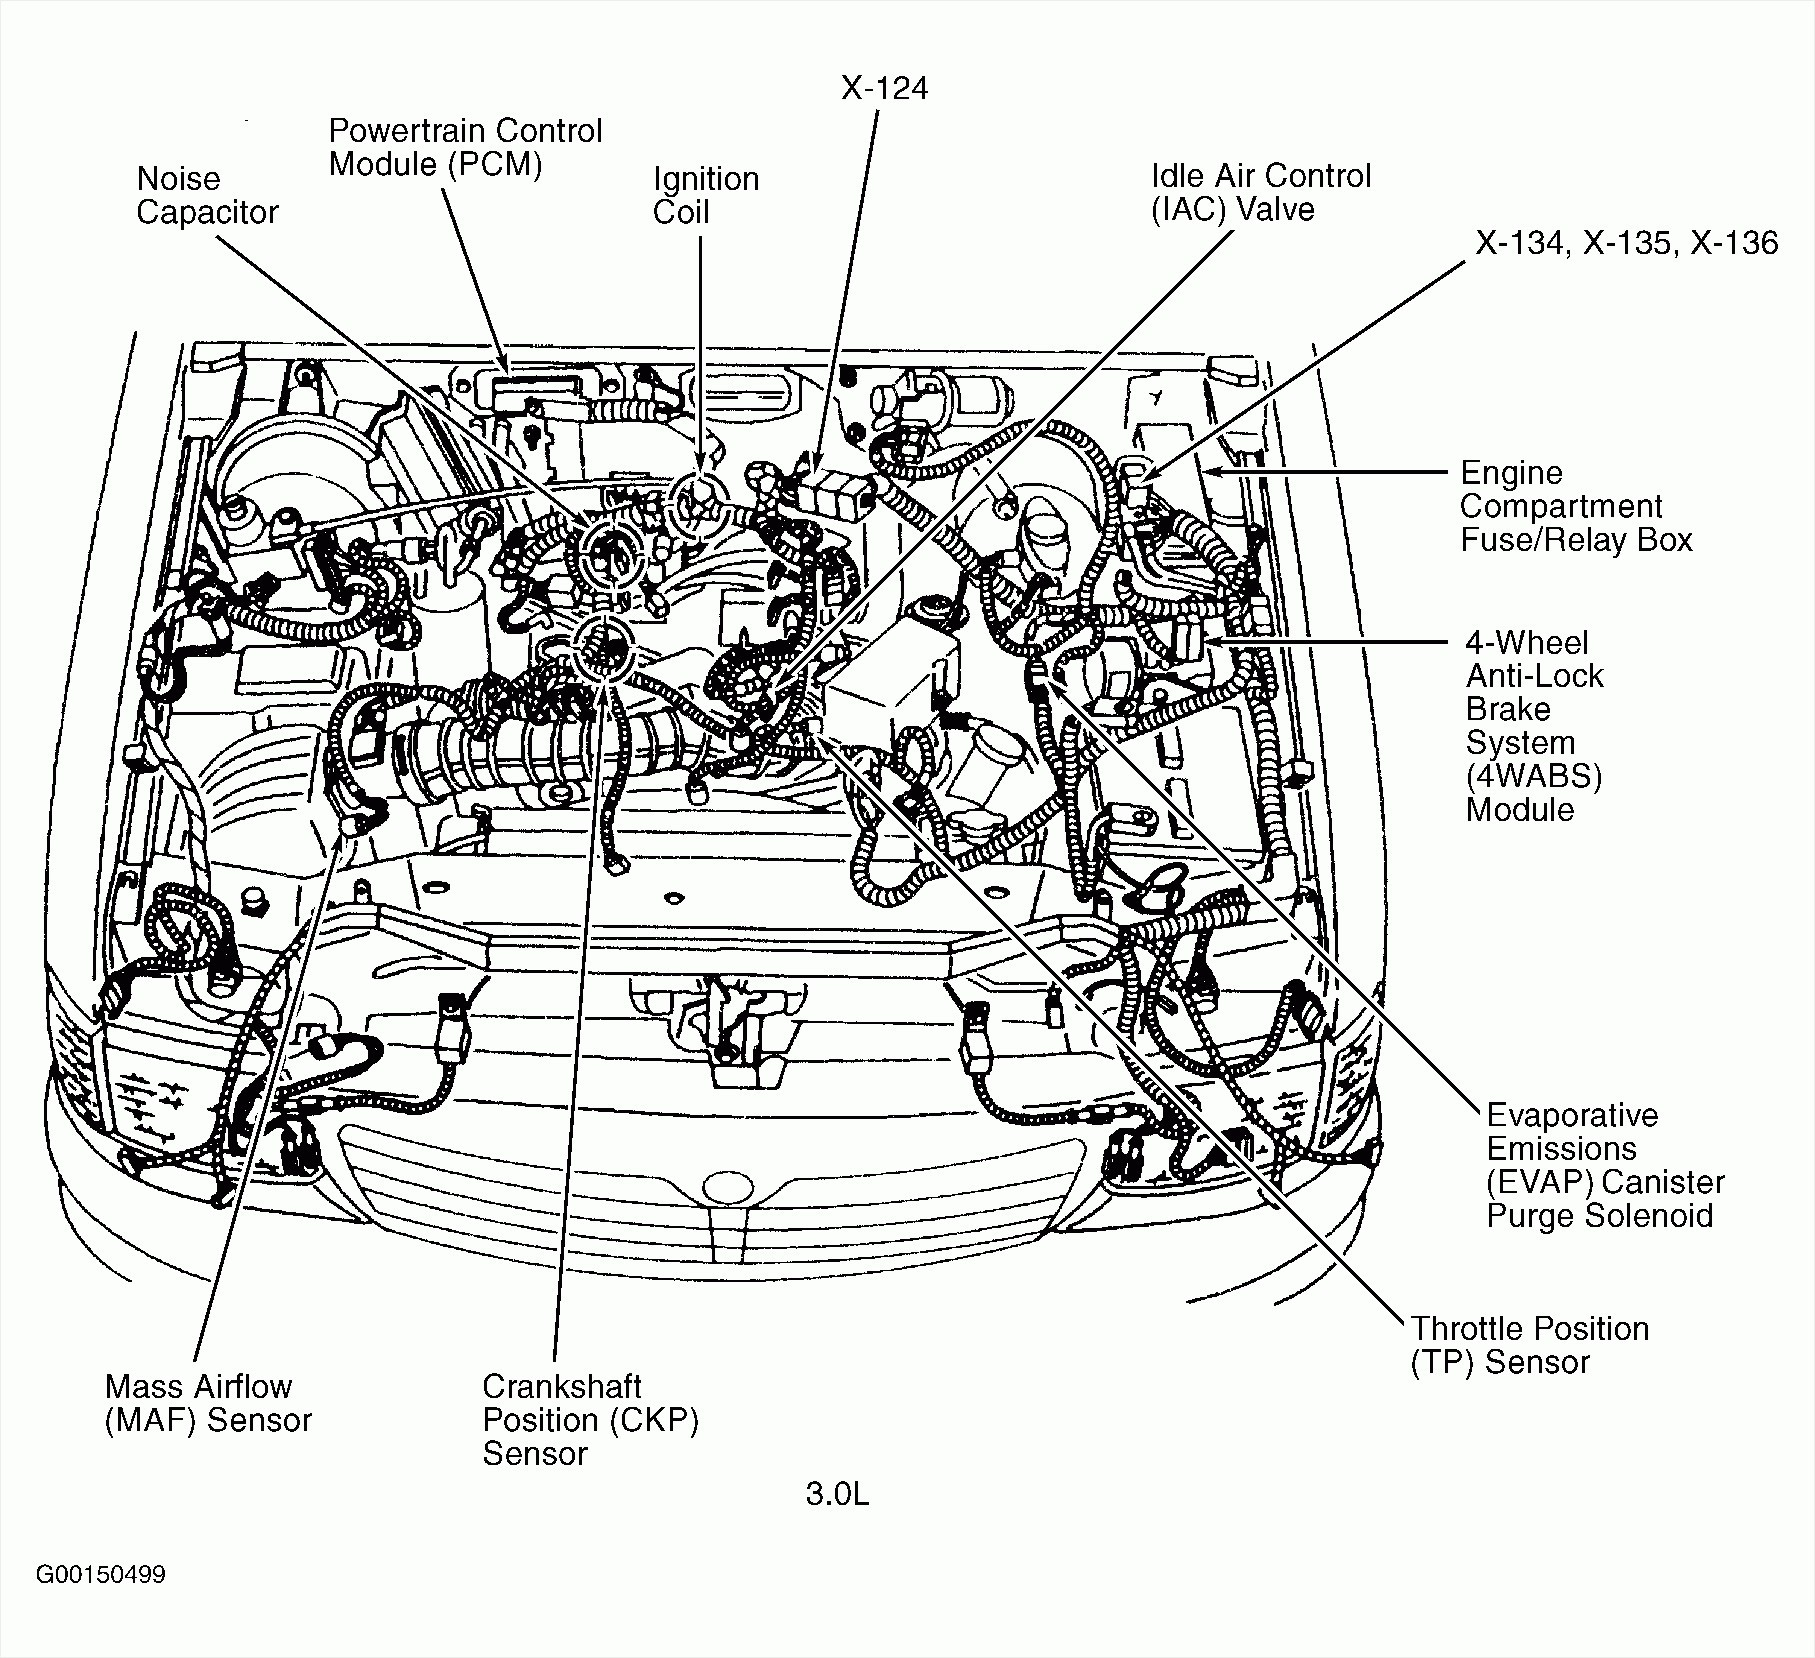 98 pontiac bonneville engine diagram wiring diagram 1997 bonneville engine diagram wiring diagram library1998 bonneville engine diagram wiring diagram online 1997 pontiac bonneville